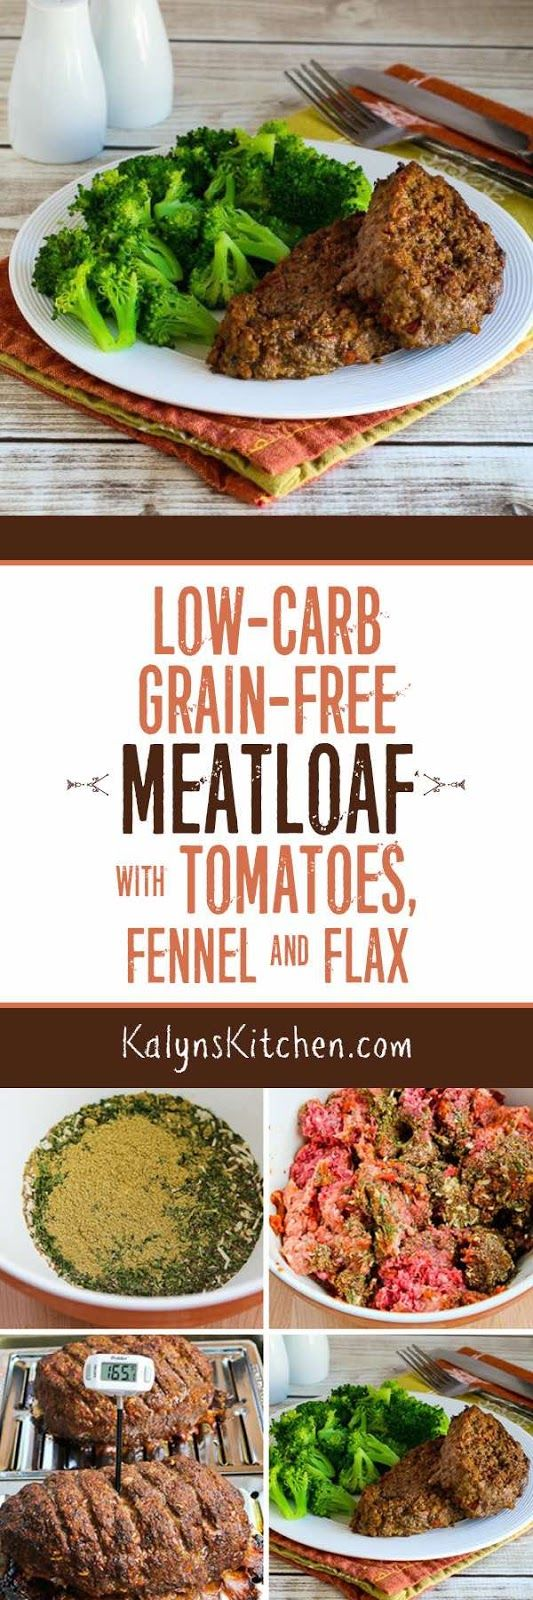 Low-Carb Grain-Free Meatloaf with Tomatoes, Fennel, and Flax Seed is a delicious meatloaf option that's also gluten-free and South Beach Diet friendly. [found on KalynsKitchen.com]